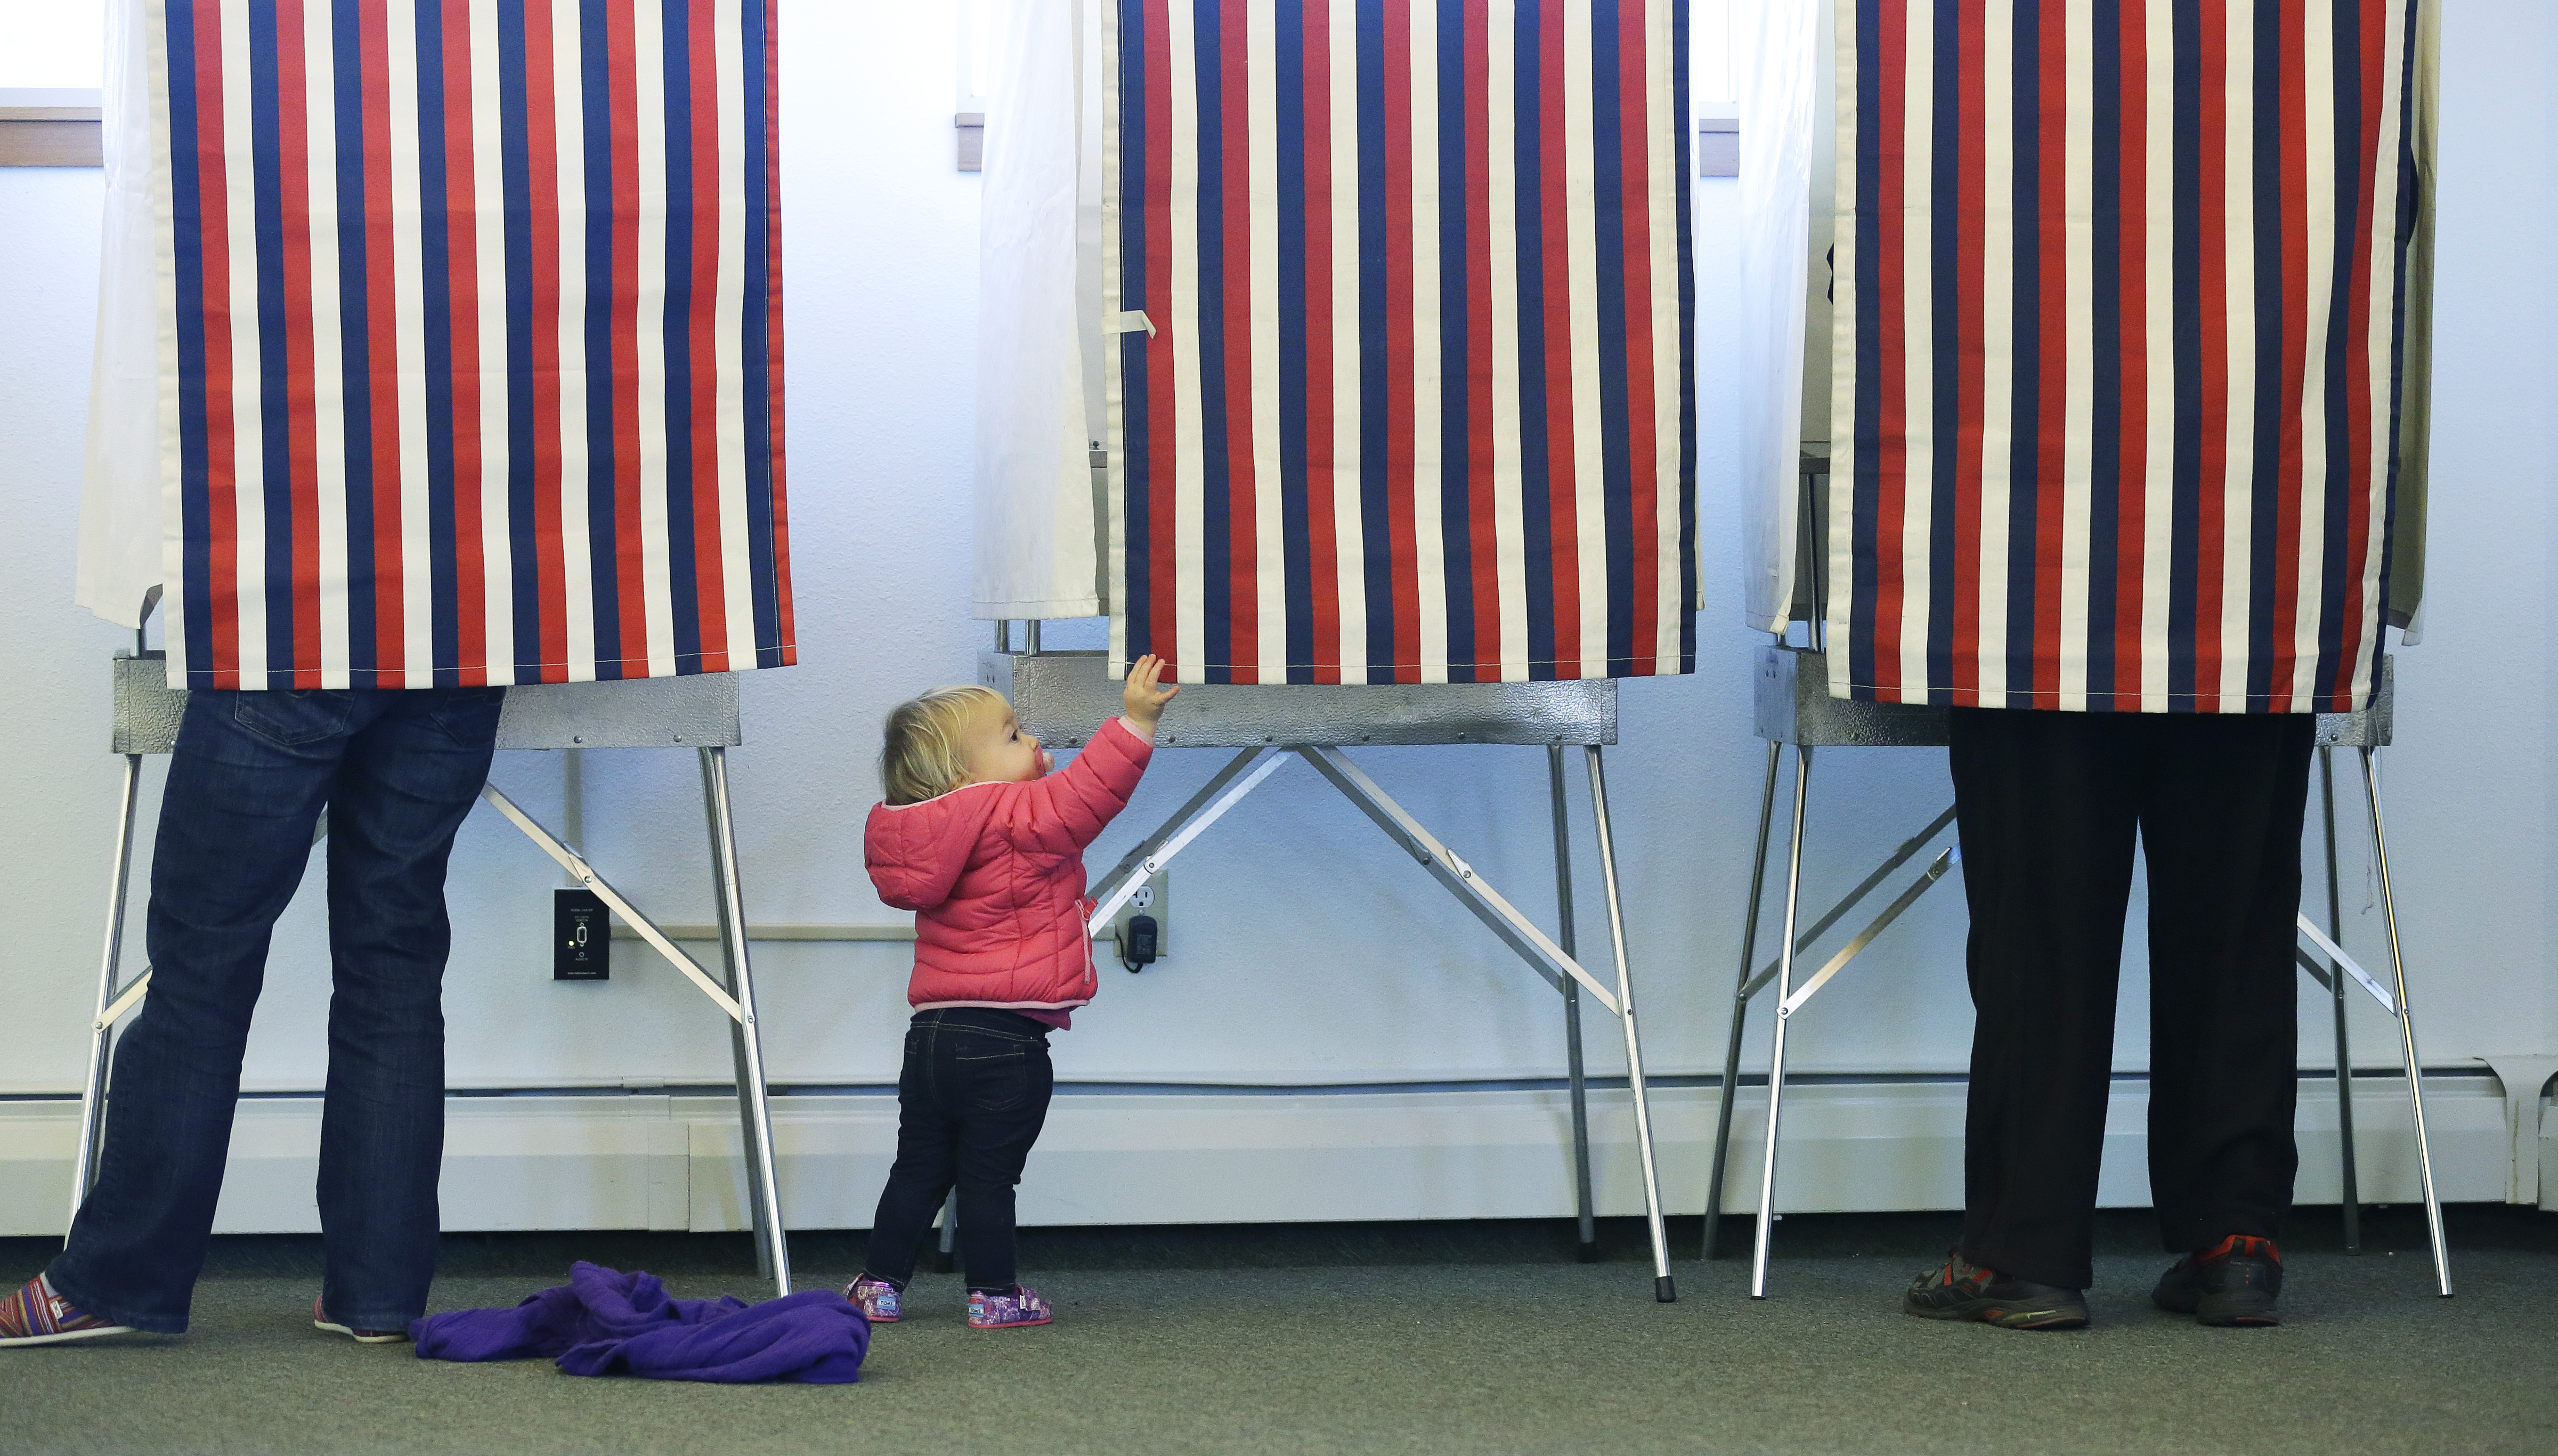 Should we pass laws allowing only citizens who pass a test on the Constitution to vote?